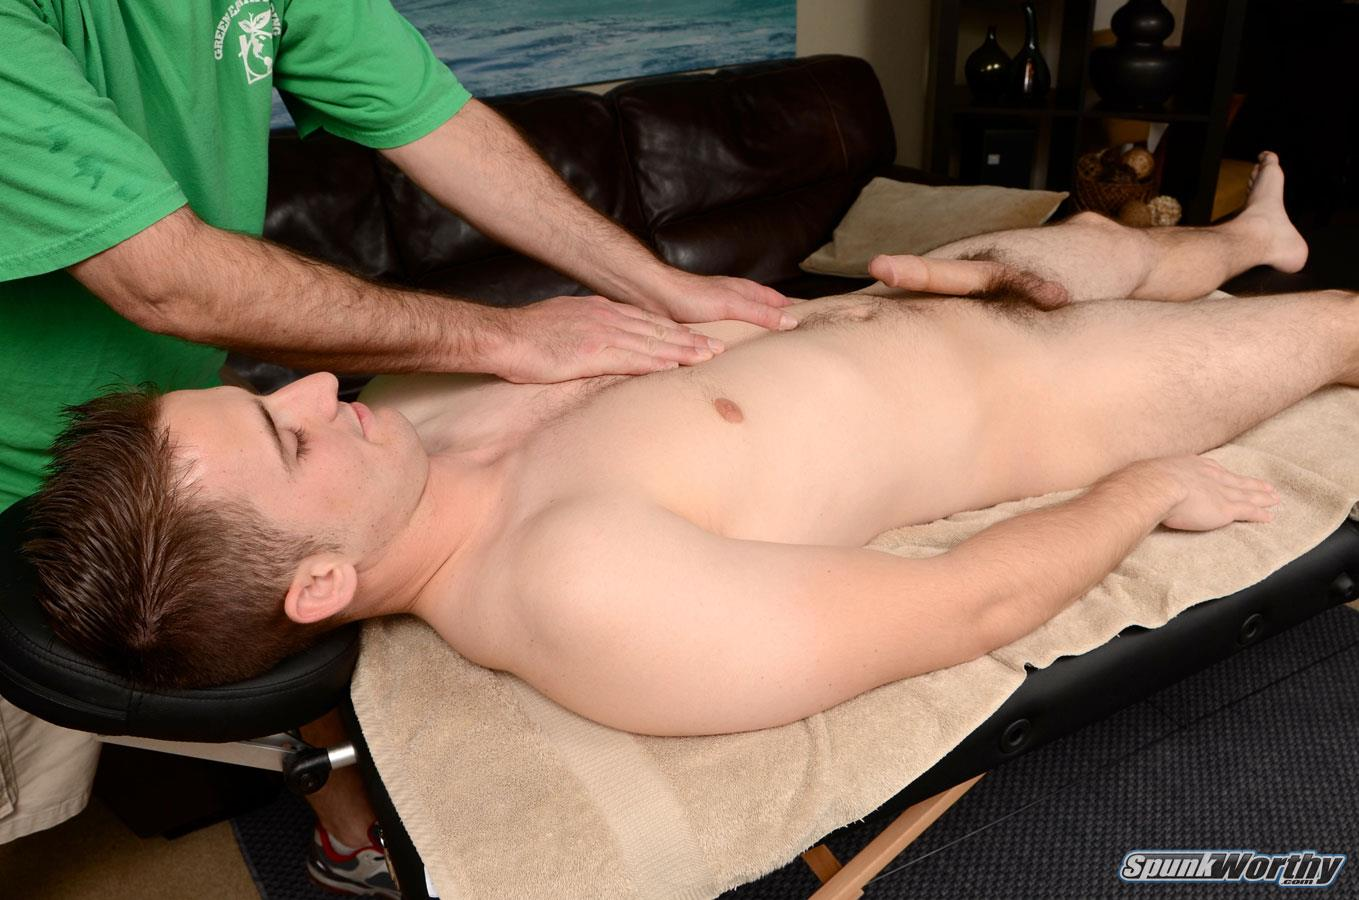 gay massage with happy ending South Australia